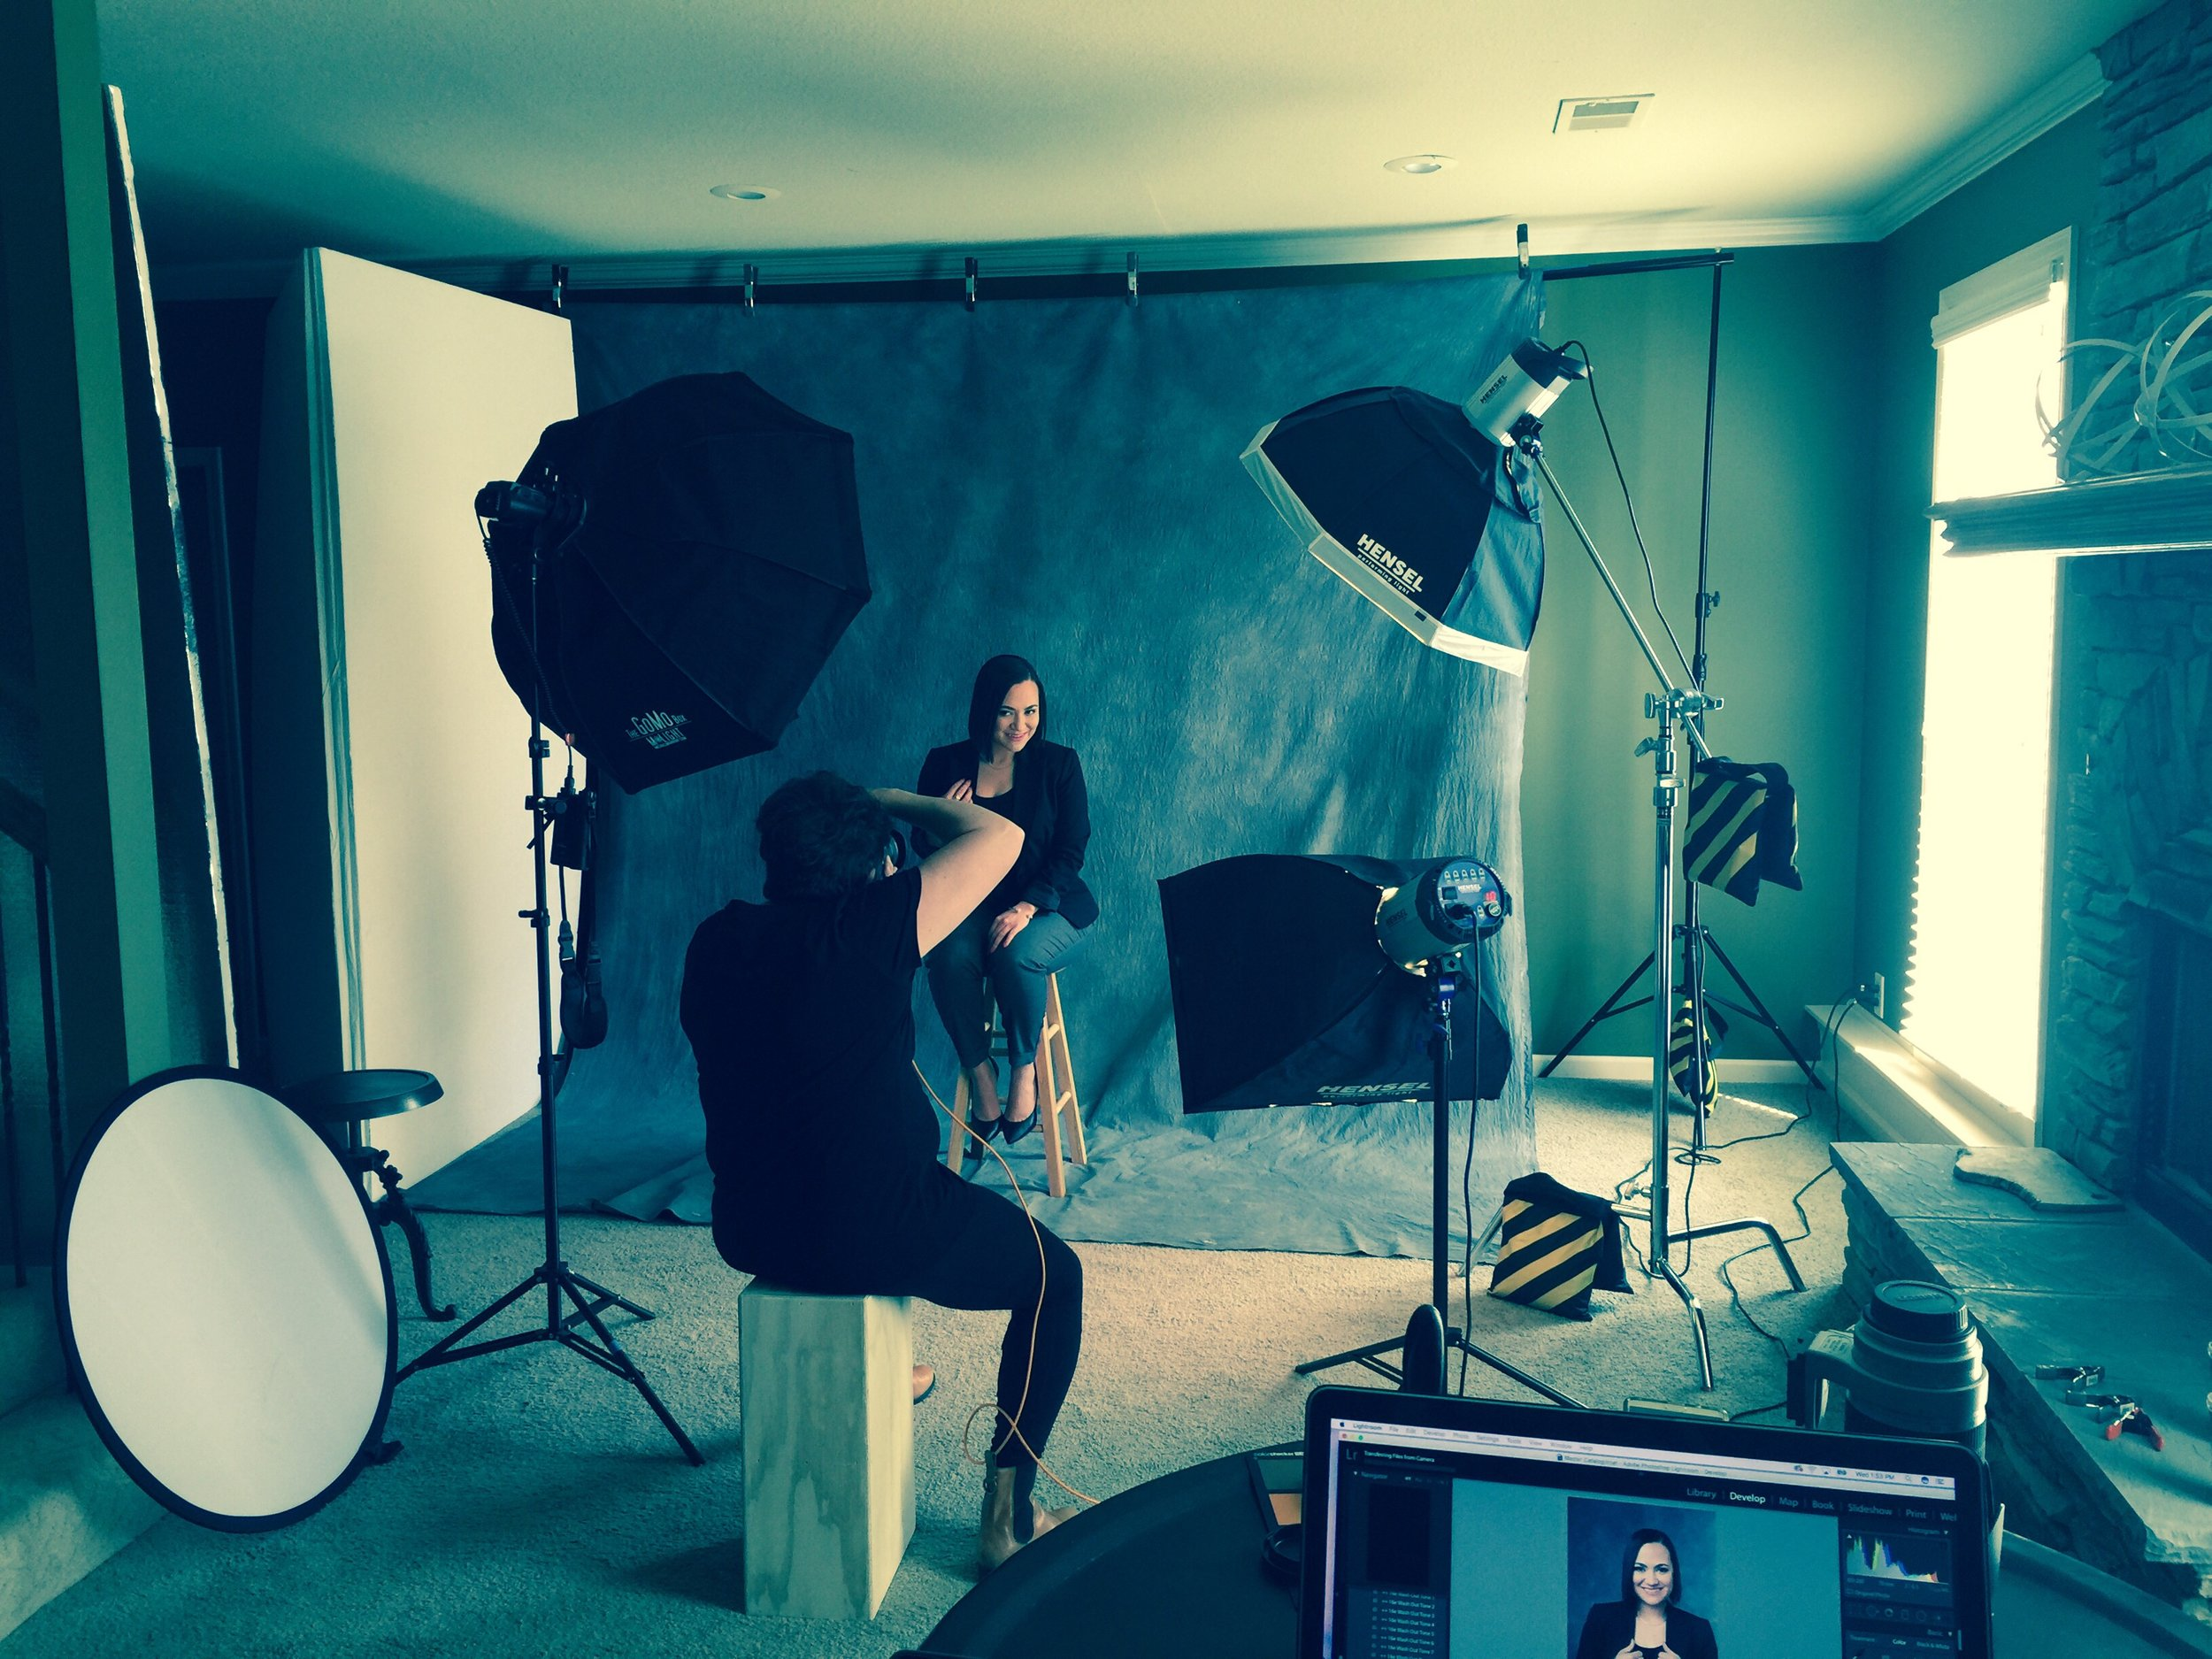 Kimberly Pimentel of Pimentel Portfolio shooting client images.